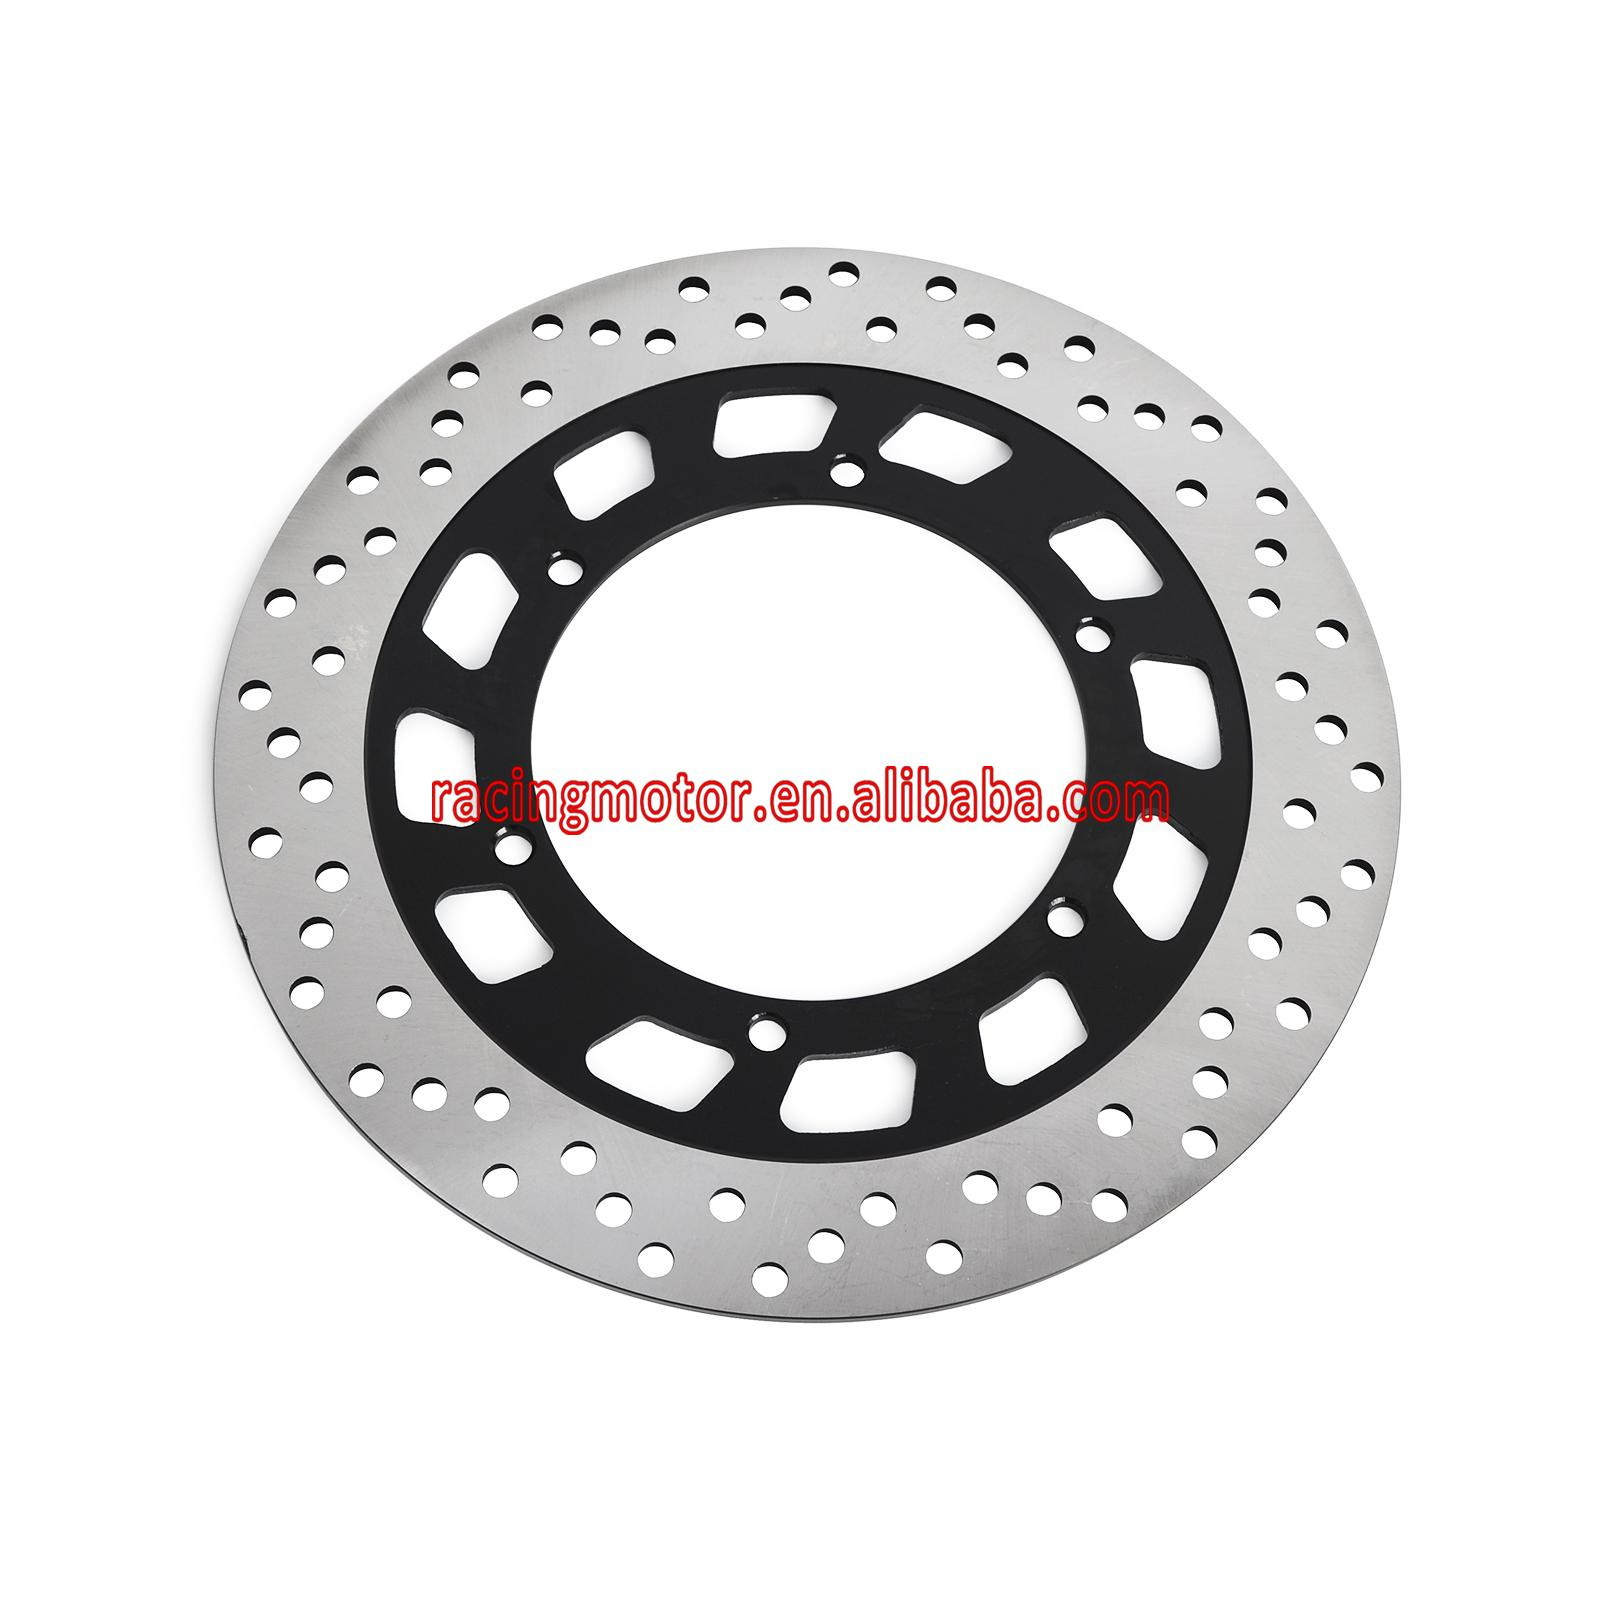 Motorcycle Rear Brake Disc Rotor For Yamaha GTS1000 1993-1996 FJ1100 1984-1985 FJ1200 1986-1995 FJ 1100 1200 NEW car styling case for hyundai elantra taillights tail lights led tail lamp rear lamp drl turn signal brake reverse